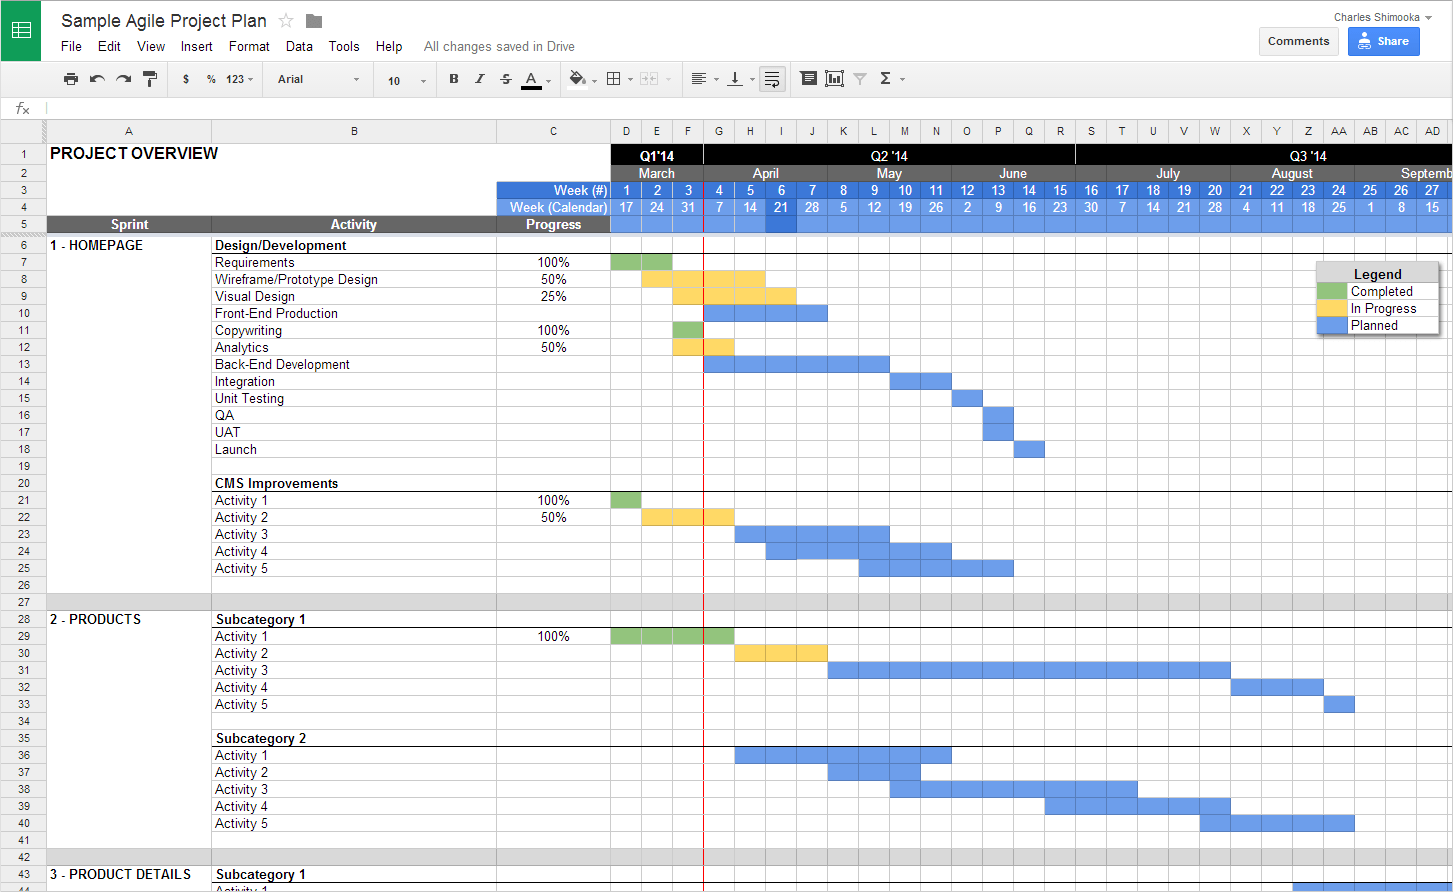 Agile Project Planning With Google Docs Charles Shimooka - Google docs roadmap template